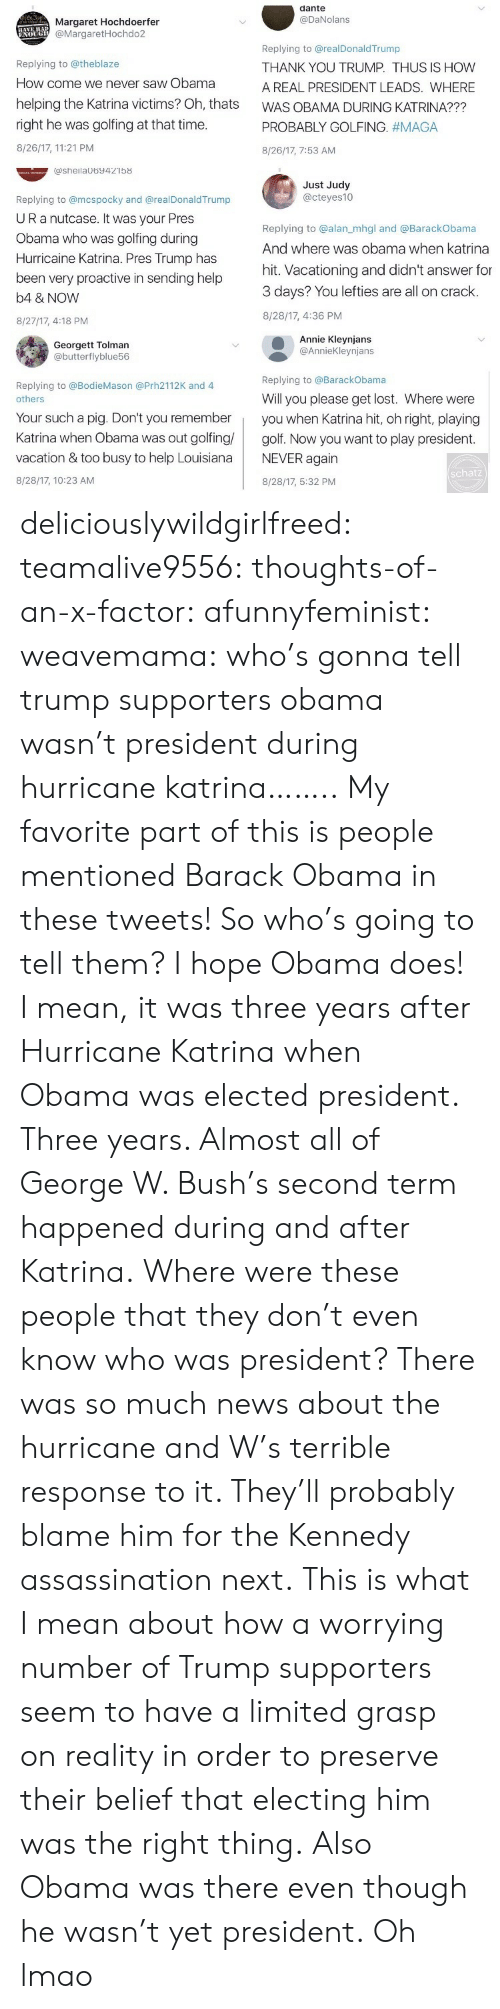 Assassination, George W. Bush, and Lmao: dante  @DaNolans  Margaret Hochdoerfer  @MargaretHochdo2  Replying to @theblaze  How come we never saw Obama  helping the Katrina victims? Oh, thats  right he was golfing at that time  8/26/17, 11:21 PM  Replying to @realDonaldTrump  THANK YOU TRUMP. THUS IS HOW  A REAL PRESIDENT LEADS. WHERE  WAS OBAMA DURING KATRINA???  PROBABLY GOLFING. #MAGA  8/26/17, 7:53 AM  ashelaUb9421b8  Just Judy  @cteyes10  Replying to @mcspocky and @realDonaldTrump  UR a nutcase. It Was your Pres  Obama who was golfing during  Hurricaine Katrina. Pres Trump has  been very proactive in sending help  b4 & NOVW  8/27/17, 4:18 PM  Replying to @alan_mhgl and @BarackObama  And where was obama when katrina  hit. Vacationing and didn't answer for  3 days? You lefties are all on crack.  8/28/17, 4:36 PM  Georgett Tolman  @butterflyblue56  Annie Kleynjans  @AnnieKleynjans  Replying to @BarackObama  Replying to @BodieMason @Prh2112K and 4  Will you please get lost. Where were  others  Your such a pig. Don't you rememberyou when Katrina hit, oh right, playing  Katrina when Obama was out golfing golf. Now you want to play president  vacation & too busy to help LouisianaNEVER again  8/28/17, 10:23 AM  schatz  8/28/17, 5:32 PM deliciouslywildgirlfreed:  teamalive9556:   thoughts-of-an-x-factor:   afunnyfeminist:  weavemama: who's gonna tell trump supporters obama wasn't president during hurricane katrina…….. My favorite part of this is people mentioned Barack Obama in these tweets! So who's going to tell them? I hope Obama does! I mean, it was three years after Hurricane Katrina when Obama was elected president. Three years. Almost all of George W. Bush's second term happened during and after Katrina. Where were these people that they don't even know who was president? There was so much news about the hurricane and W's terrible response to it. They'll probably blame him for the Kennedy assassination next.  This is what I mean about how a worrying number of Trump supporters seem to have a limited grasp on reality in order to preserve their belief that electing him was the right thing.   Also Obama was there even though he wasn't yet president.   Oh lmao